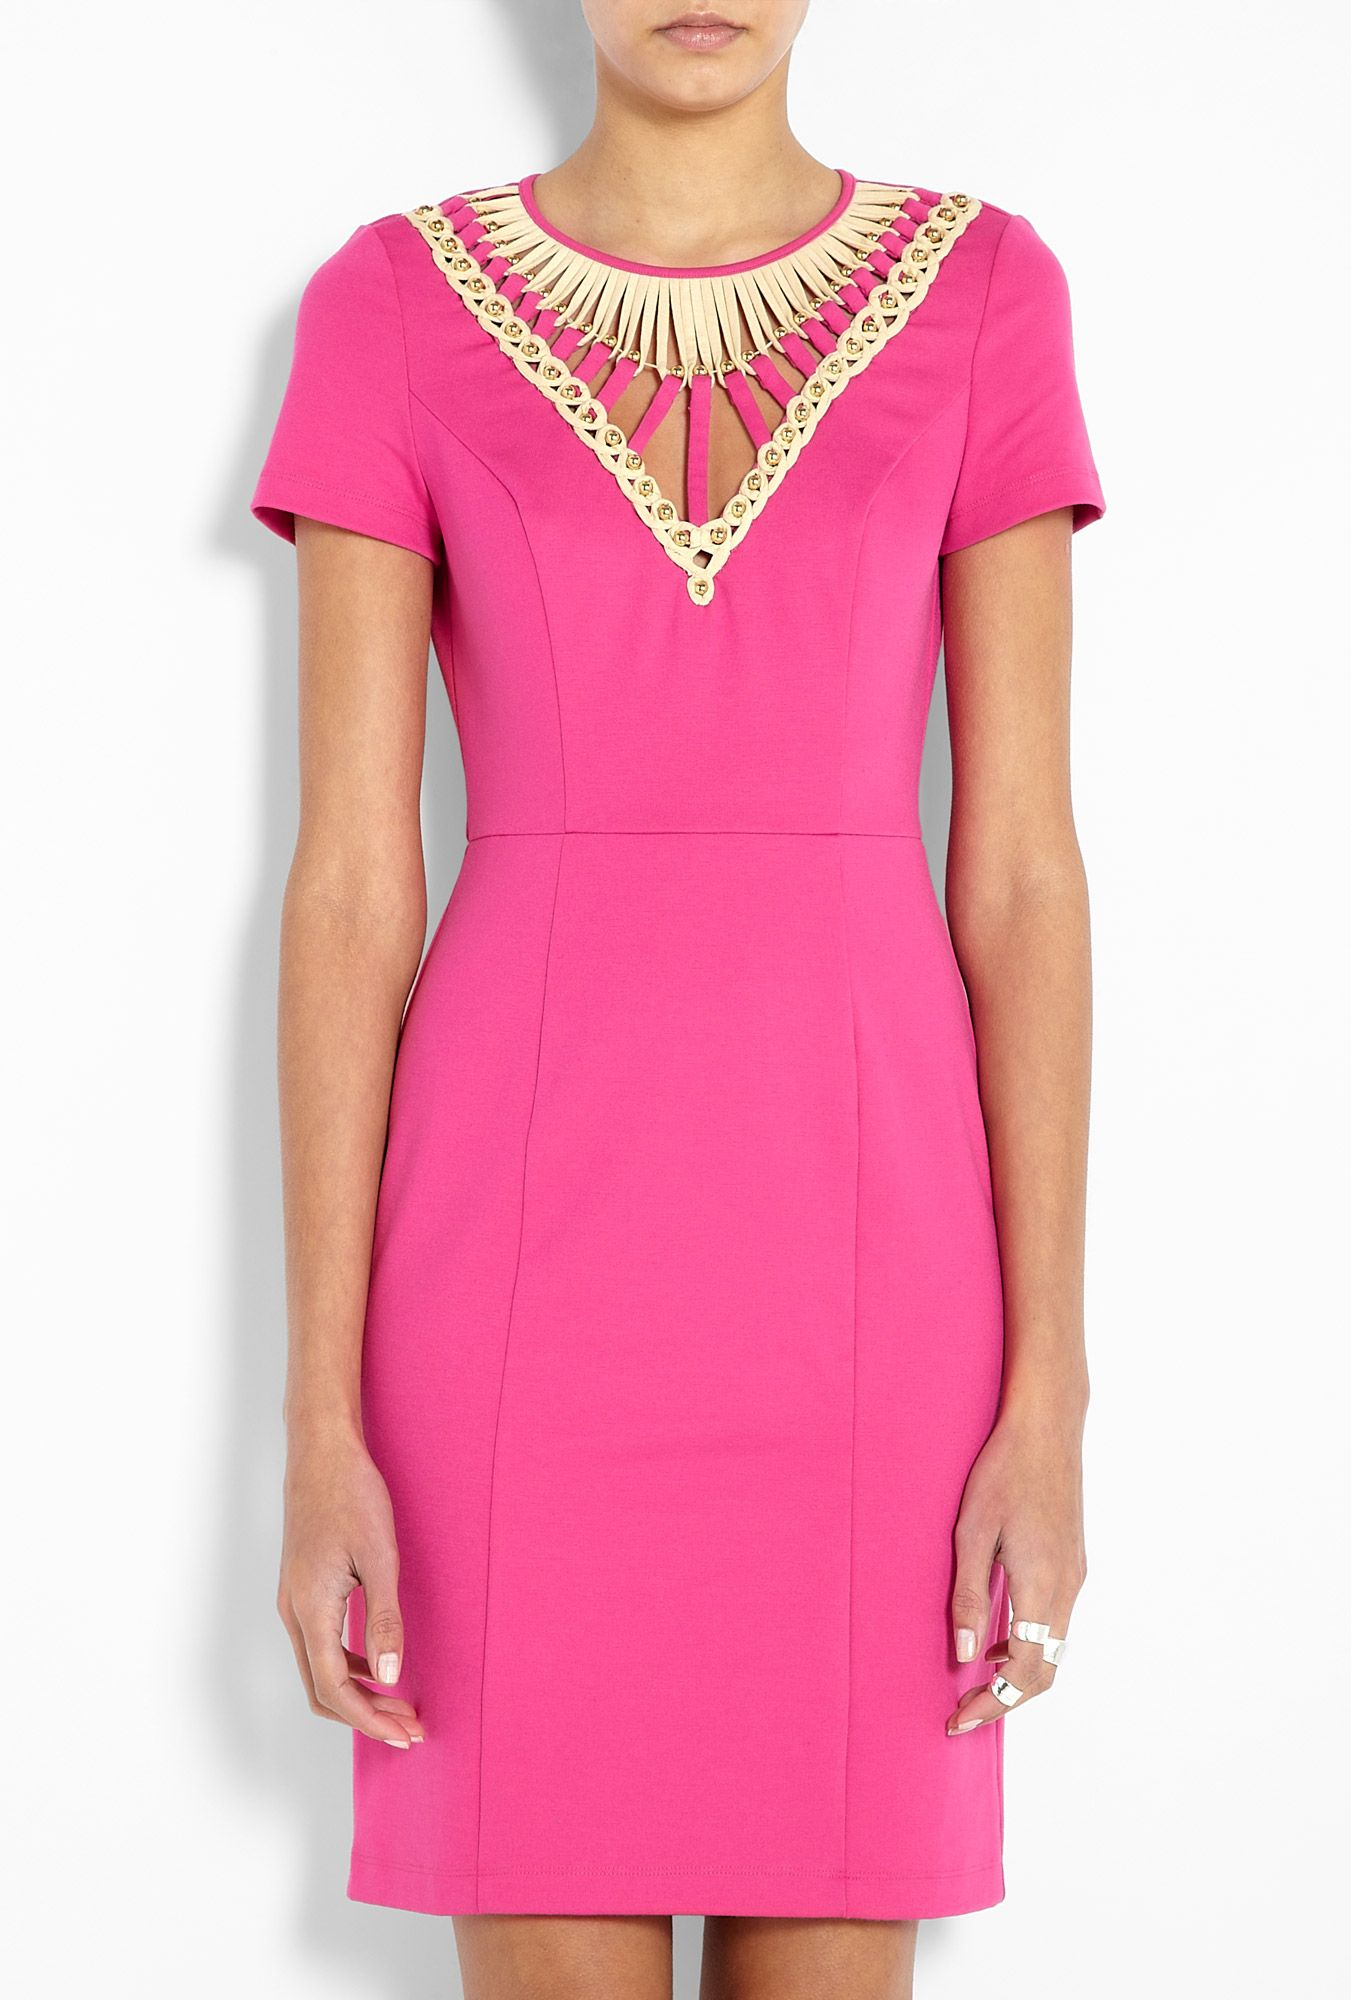 ALICE by Temperley - Fushcia Leon Dress | Anything but jeans ...